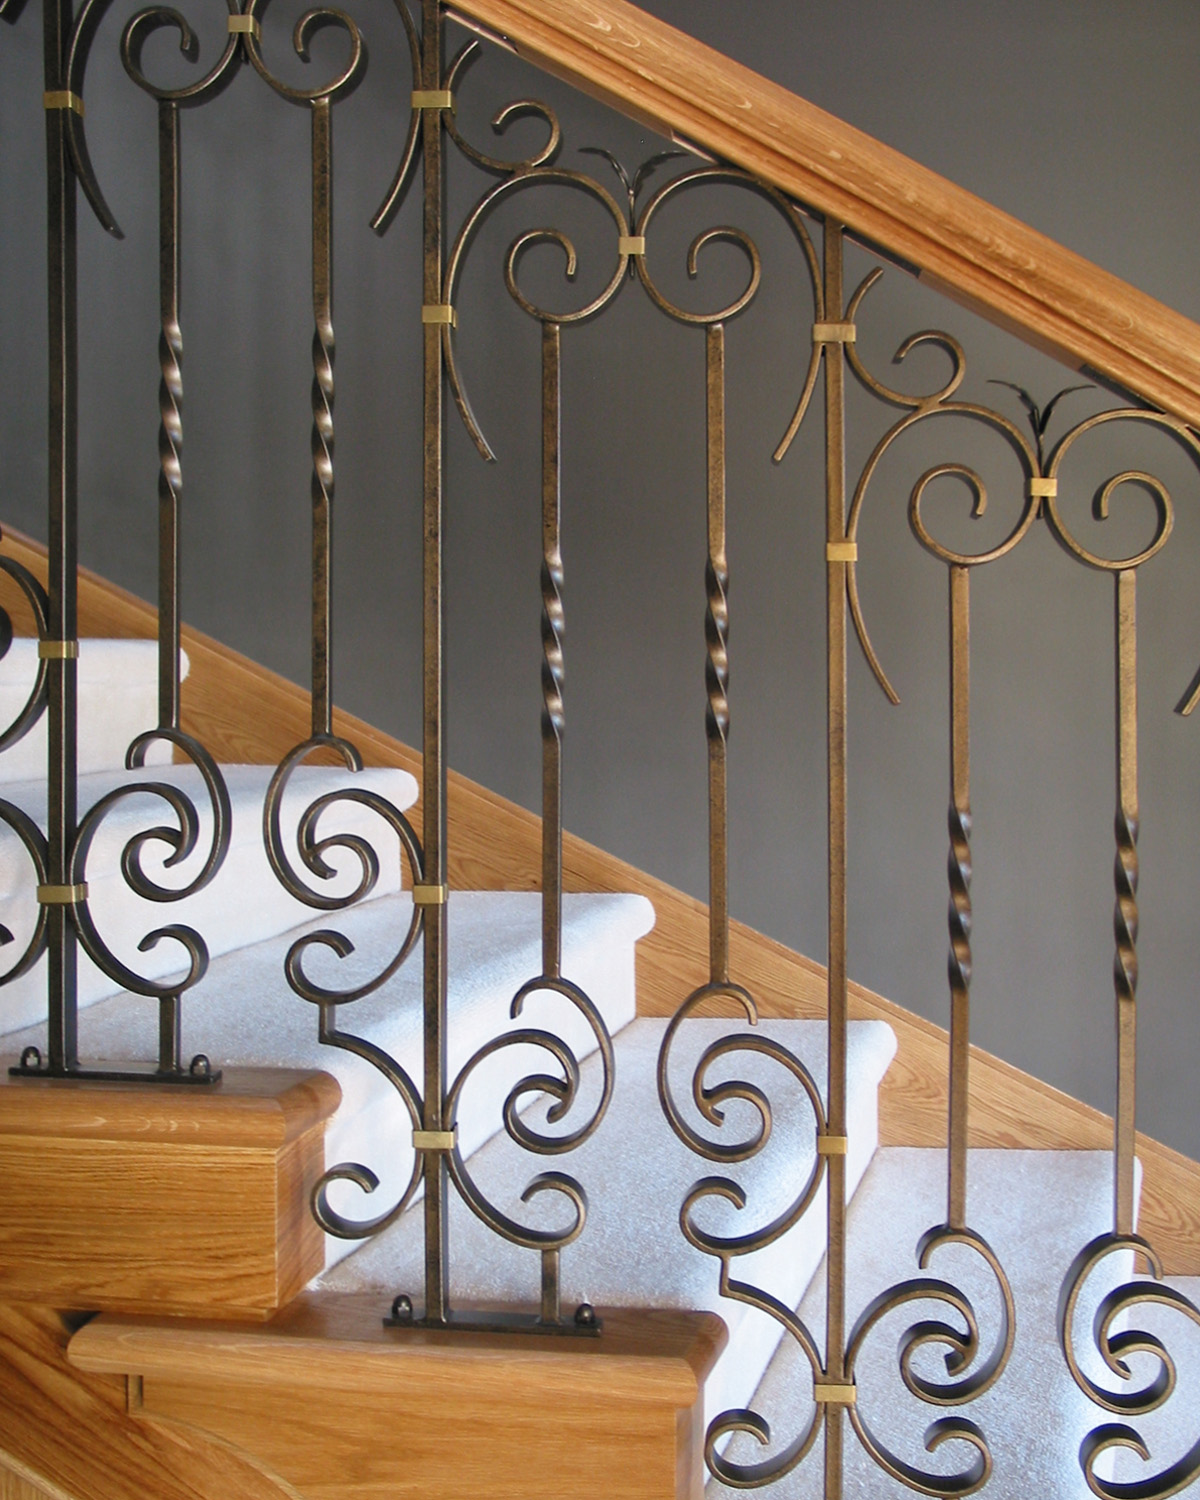 Handcrafted wrought iron balustrade